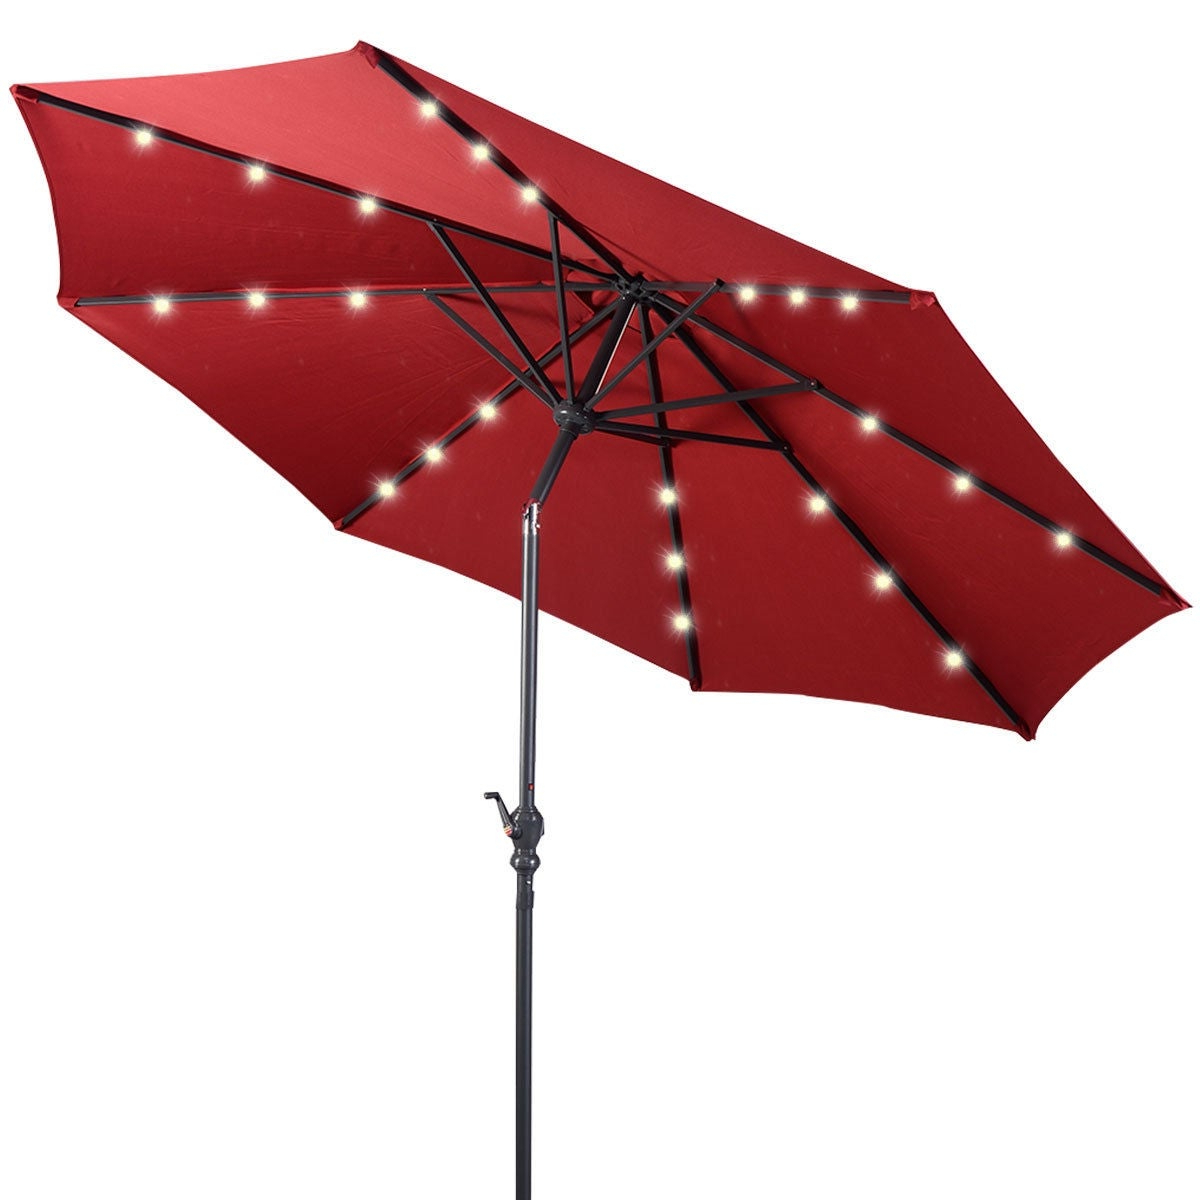 Our Best Patio Umbrellas For Venice Lighted Umbrellas (View 12 of 20)